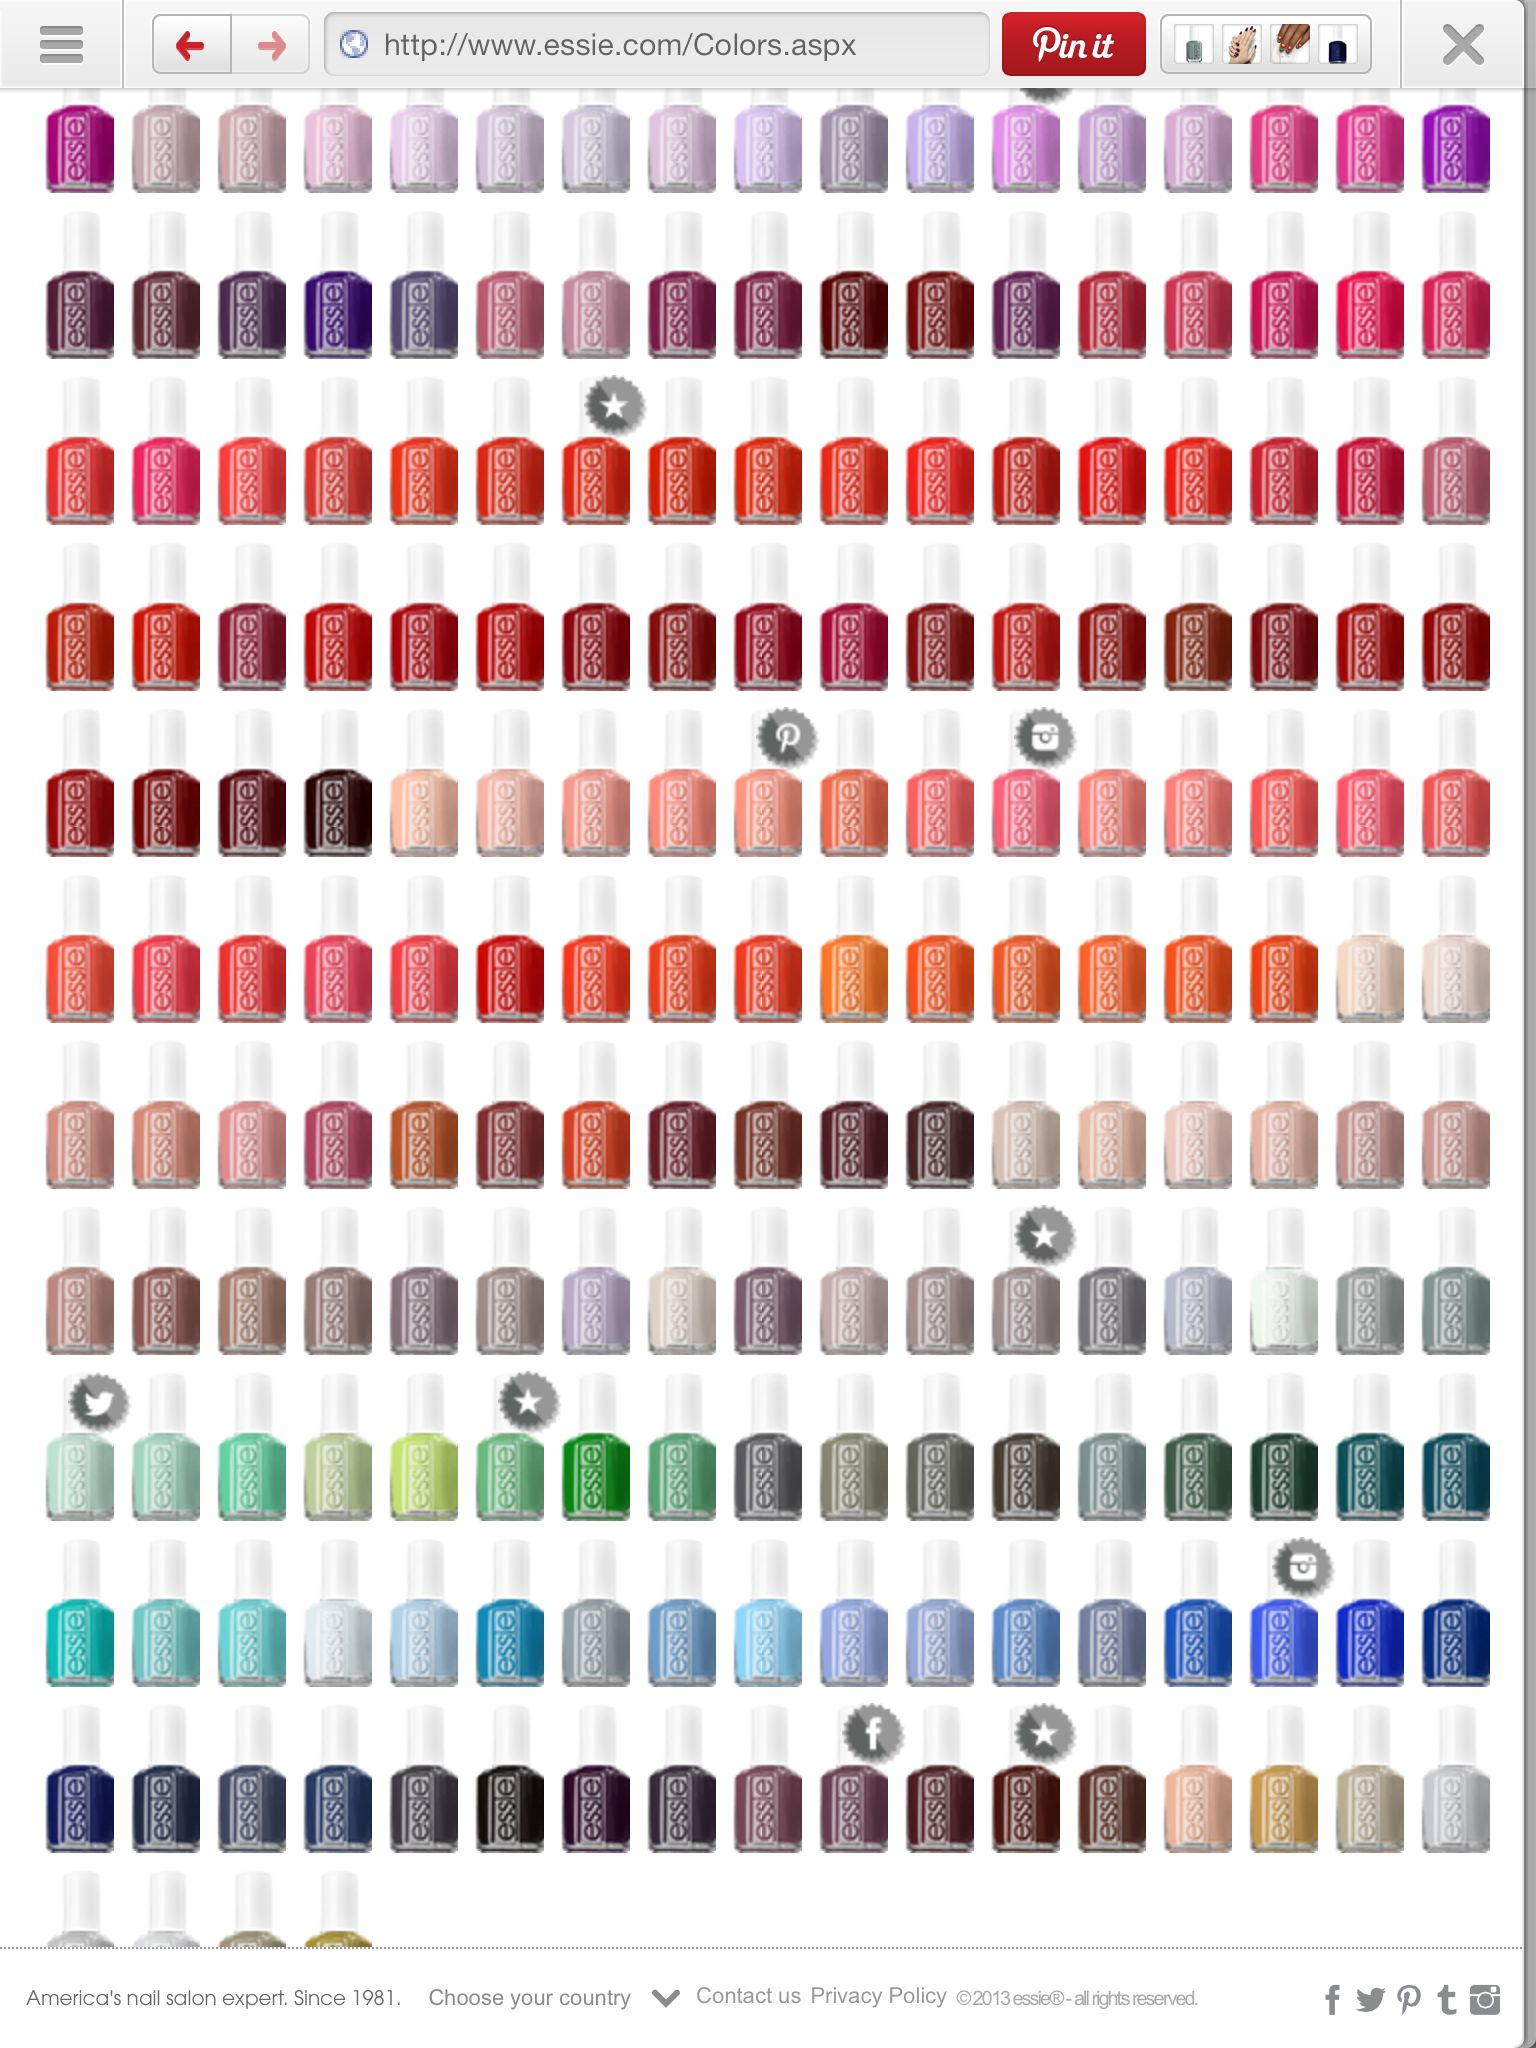 Essie color chart | Products I Love | Pinterest